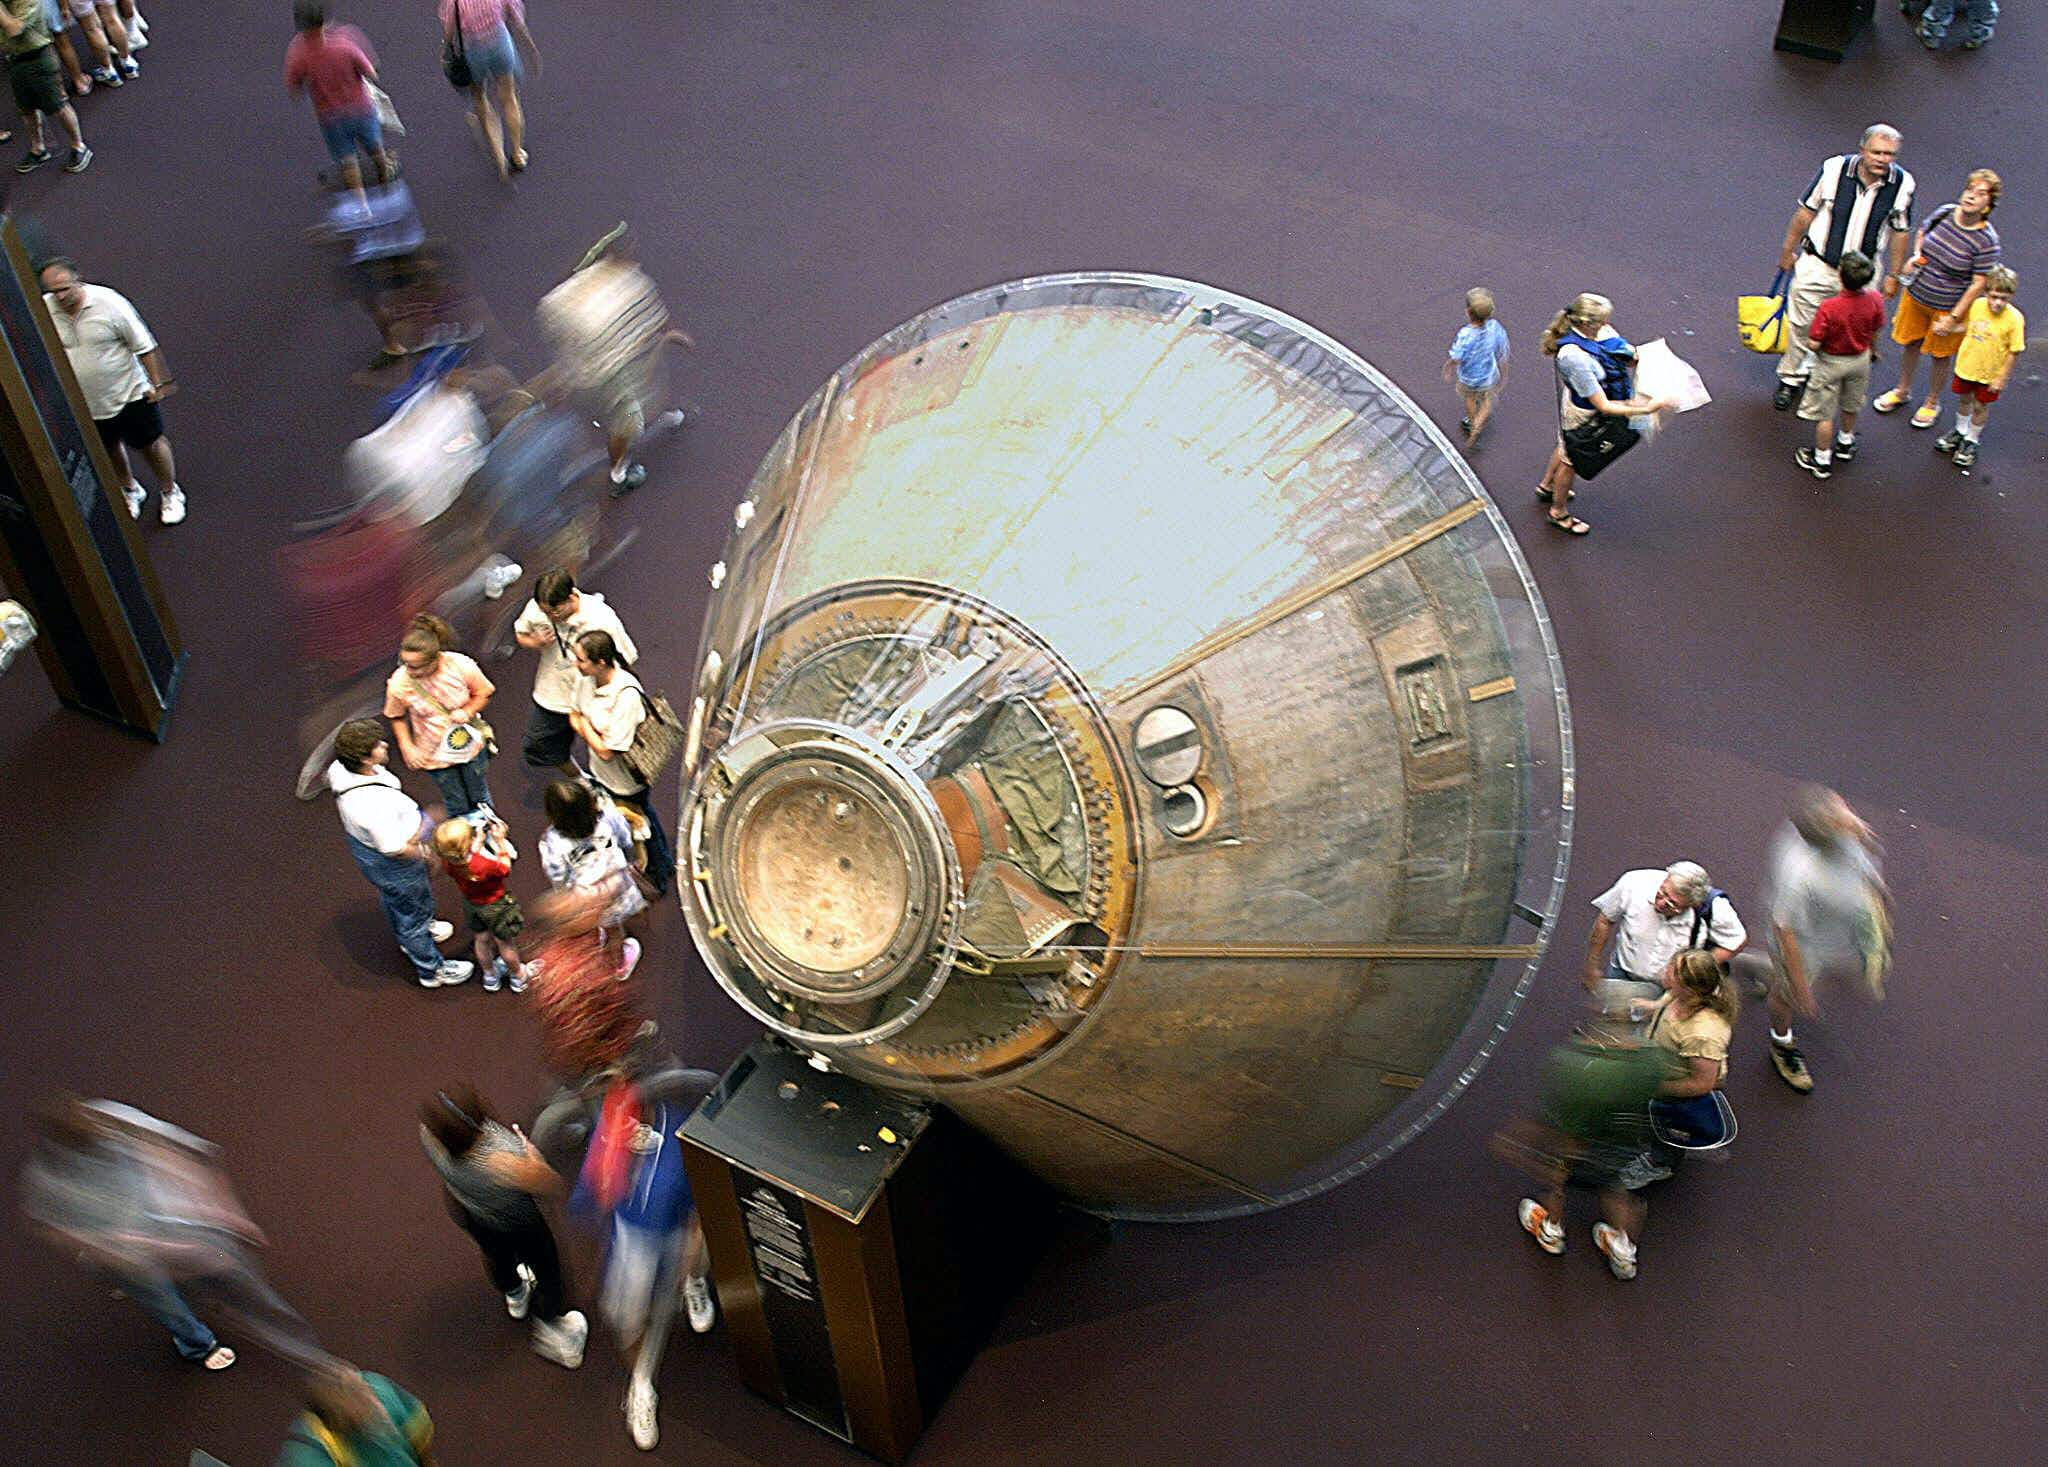 The Apollo 11 command module will take off on tour around the US for the next two years